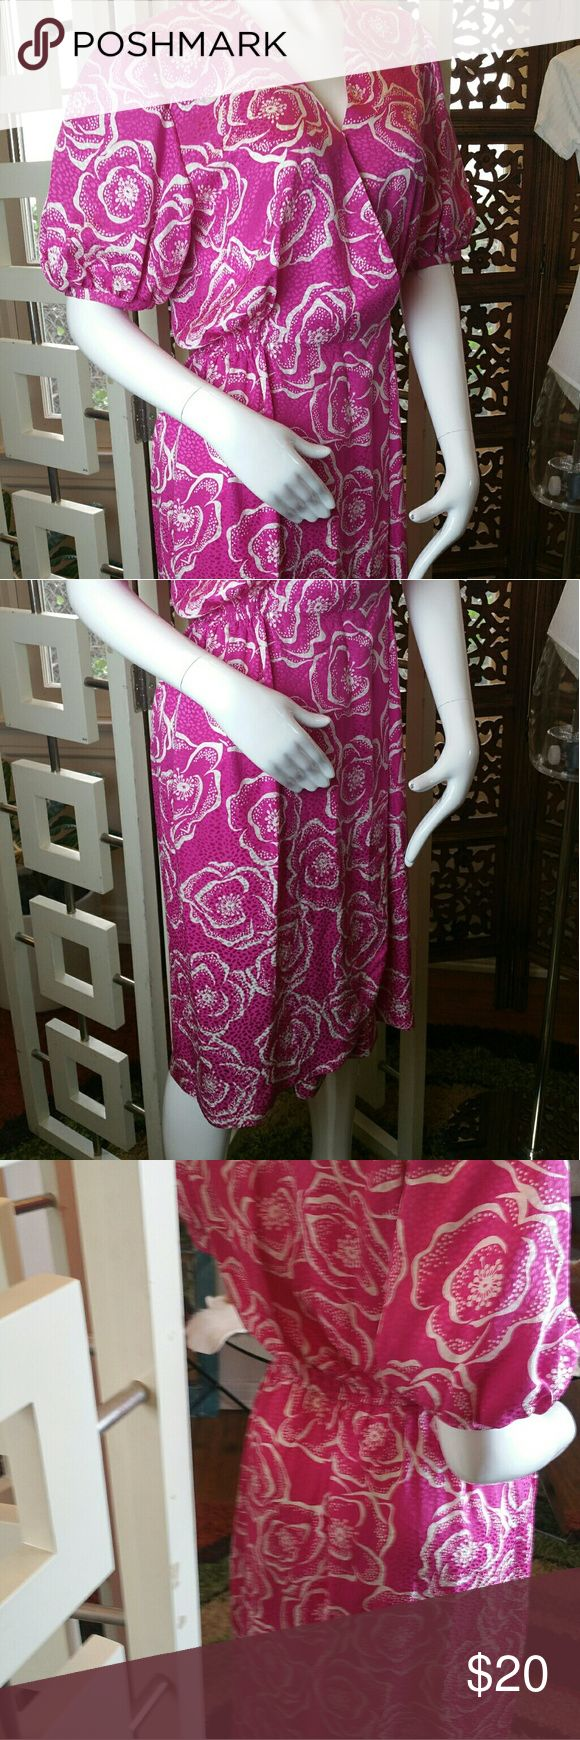 Vintage NEIMAN MARCUS 100% SILK DRESS! Pretty in (HOT) Pink, Flower Power, Wrap, Silk GORGEOUSNESS!!! Neiman Marcus Dresses Midi